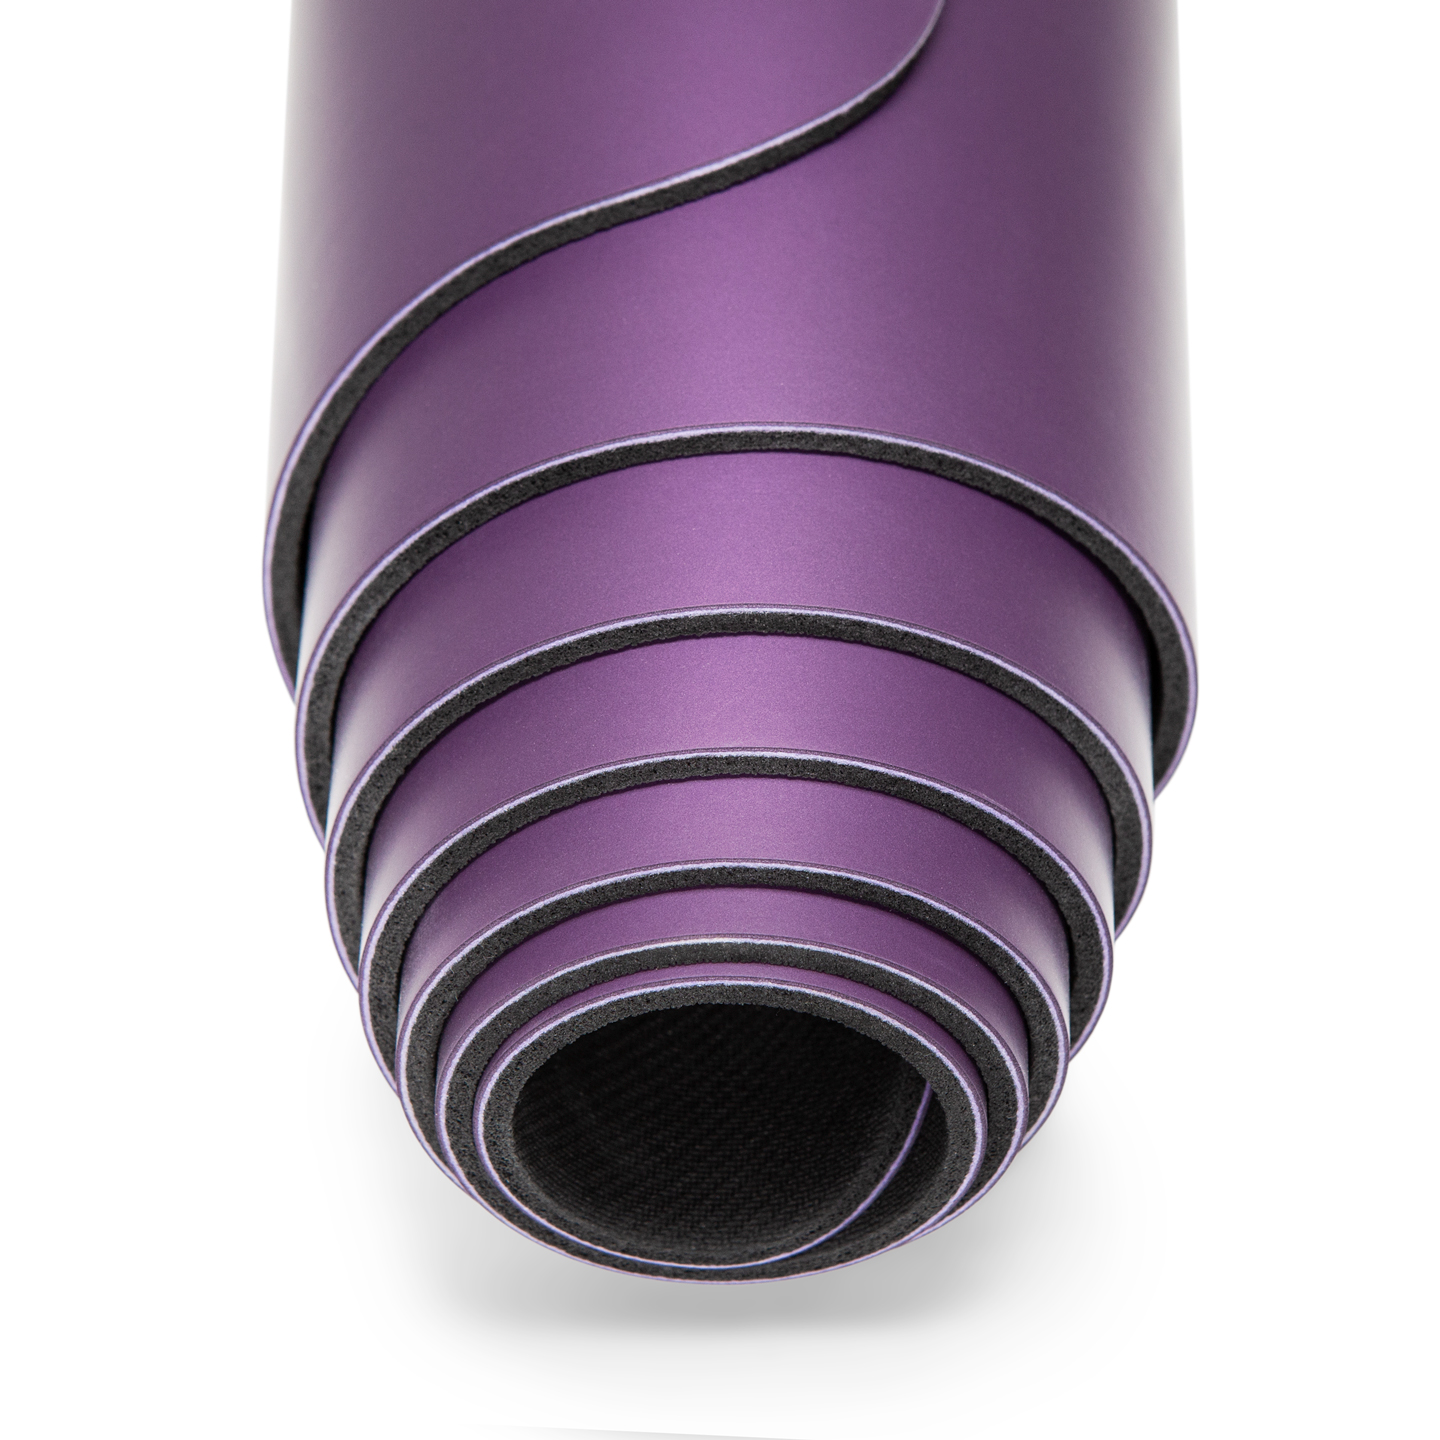 Mocana nimbus purple yoga mat with alignment and extra grip